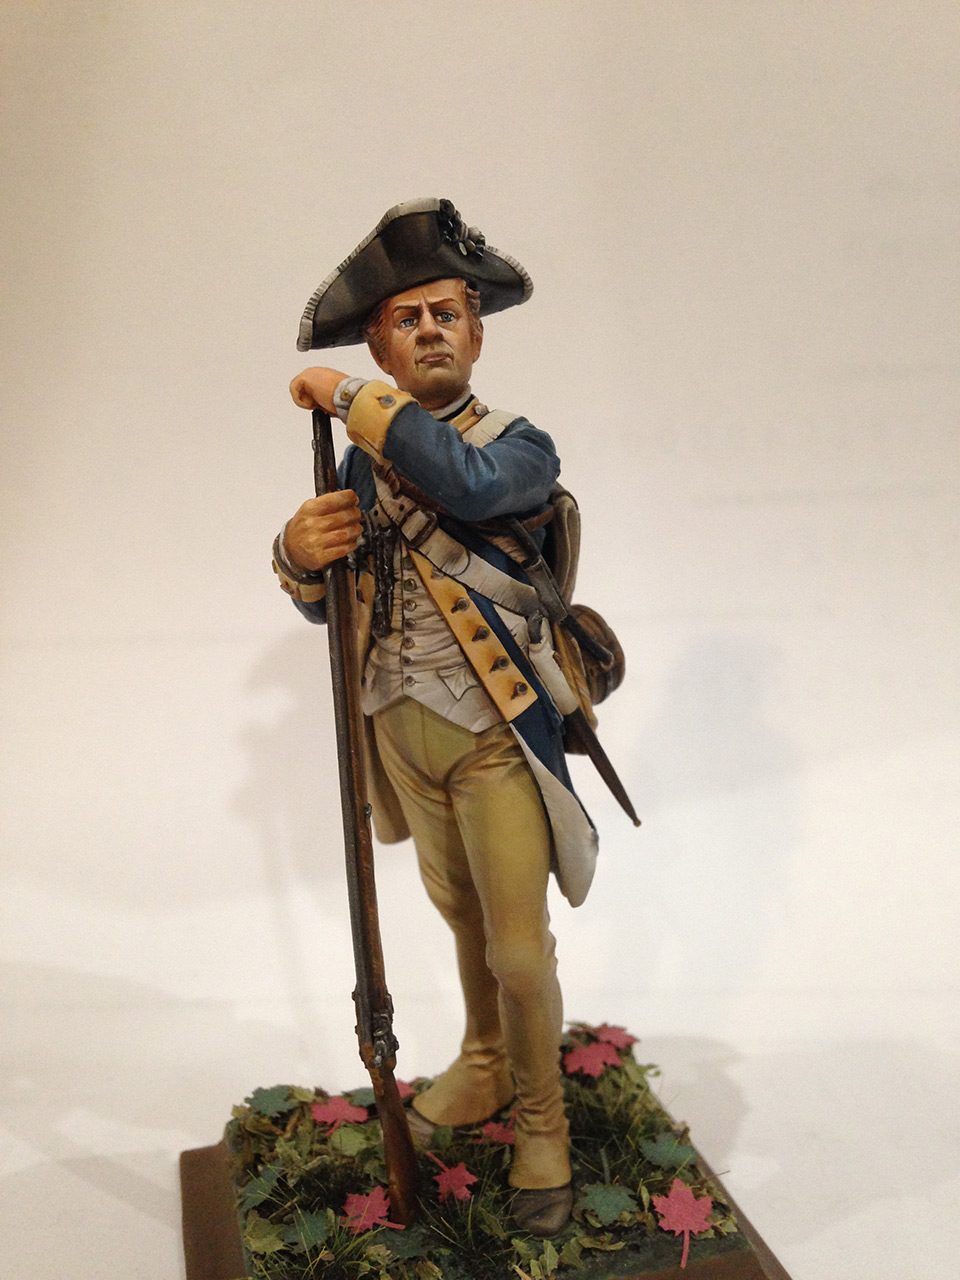 Figures: Private, 1st New York regt. of Continental Army, photo #8